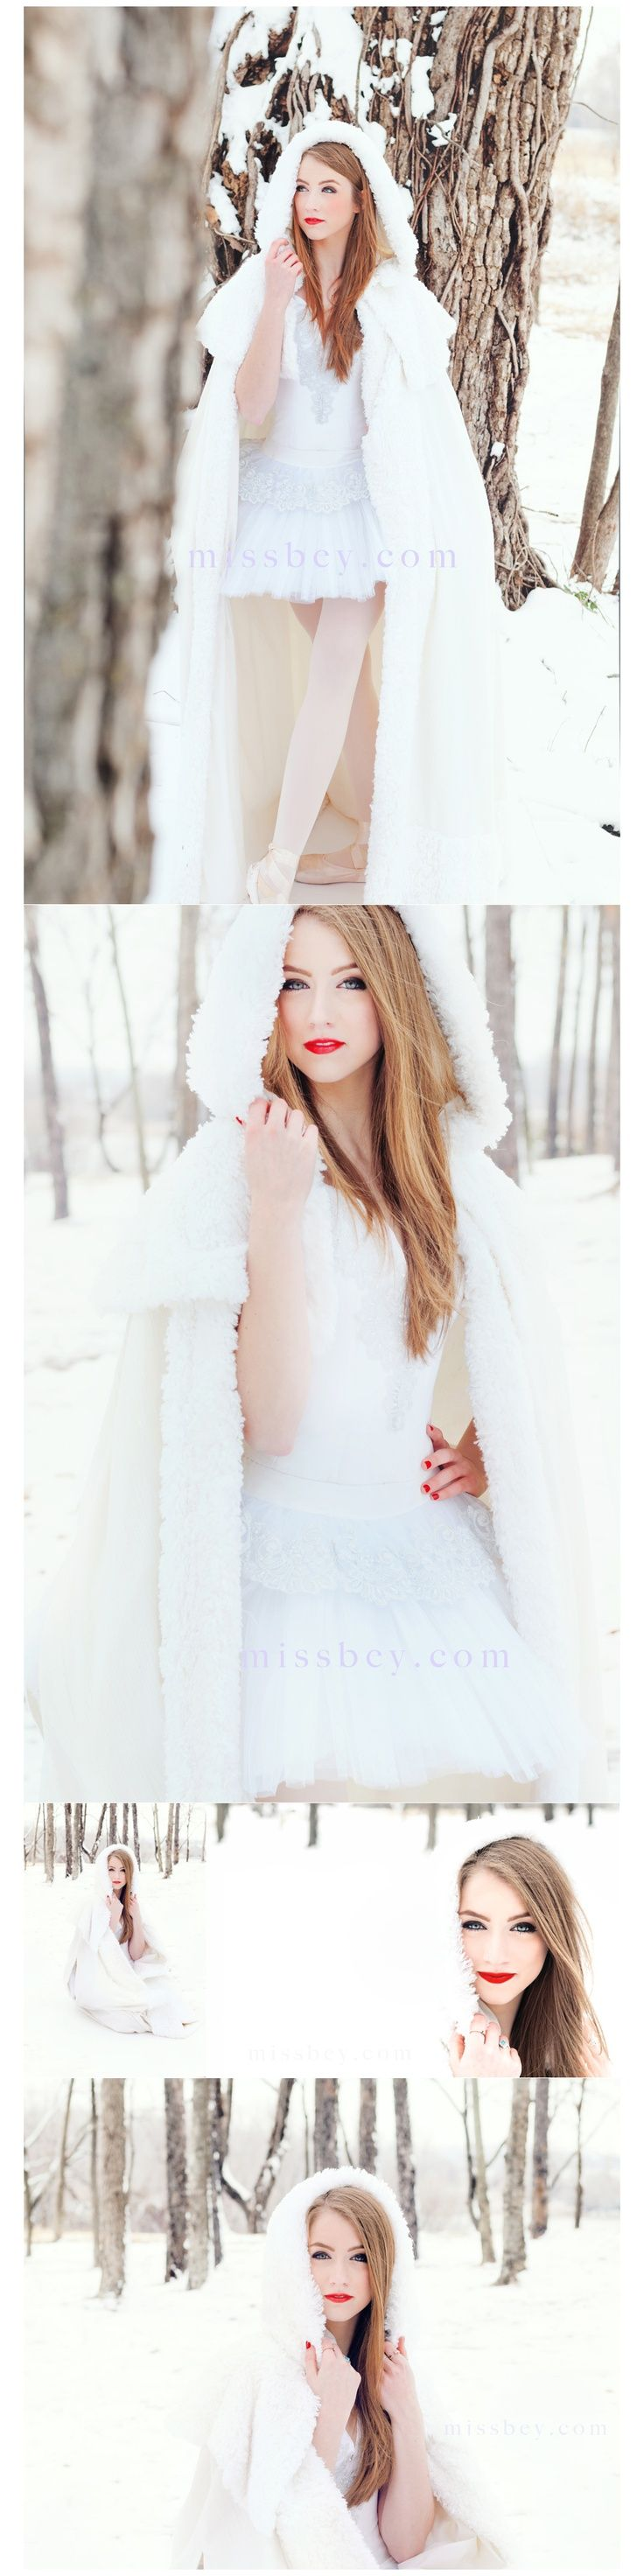 senior styled shoot - snow white